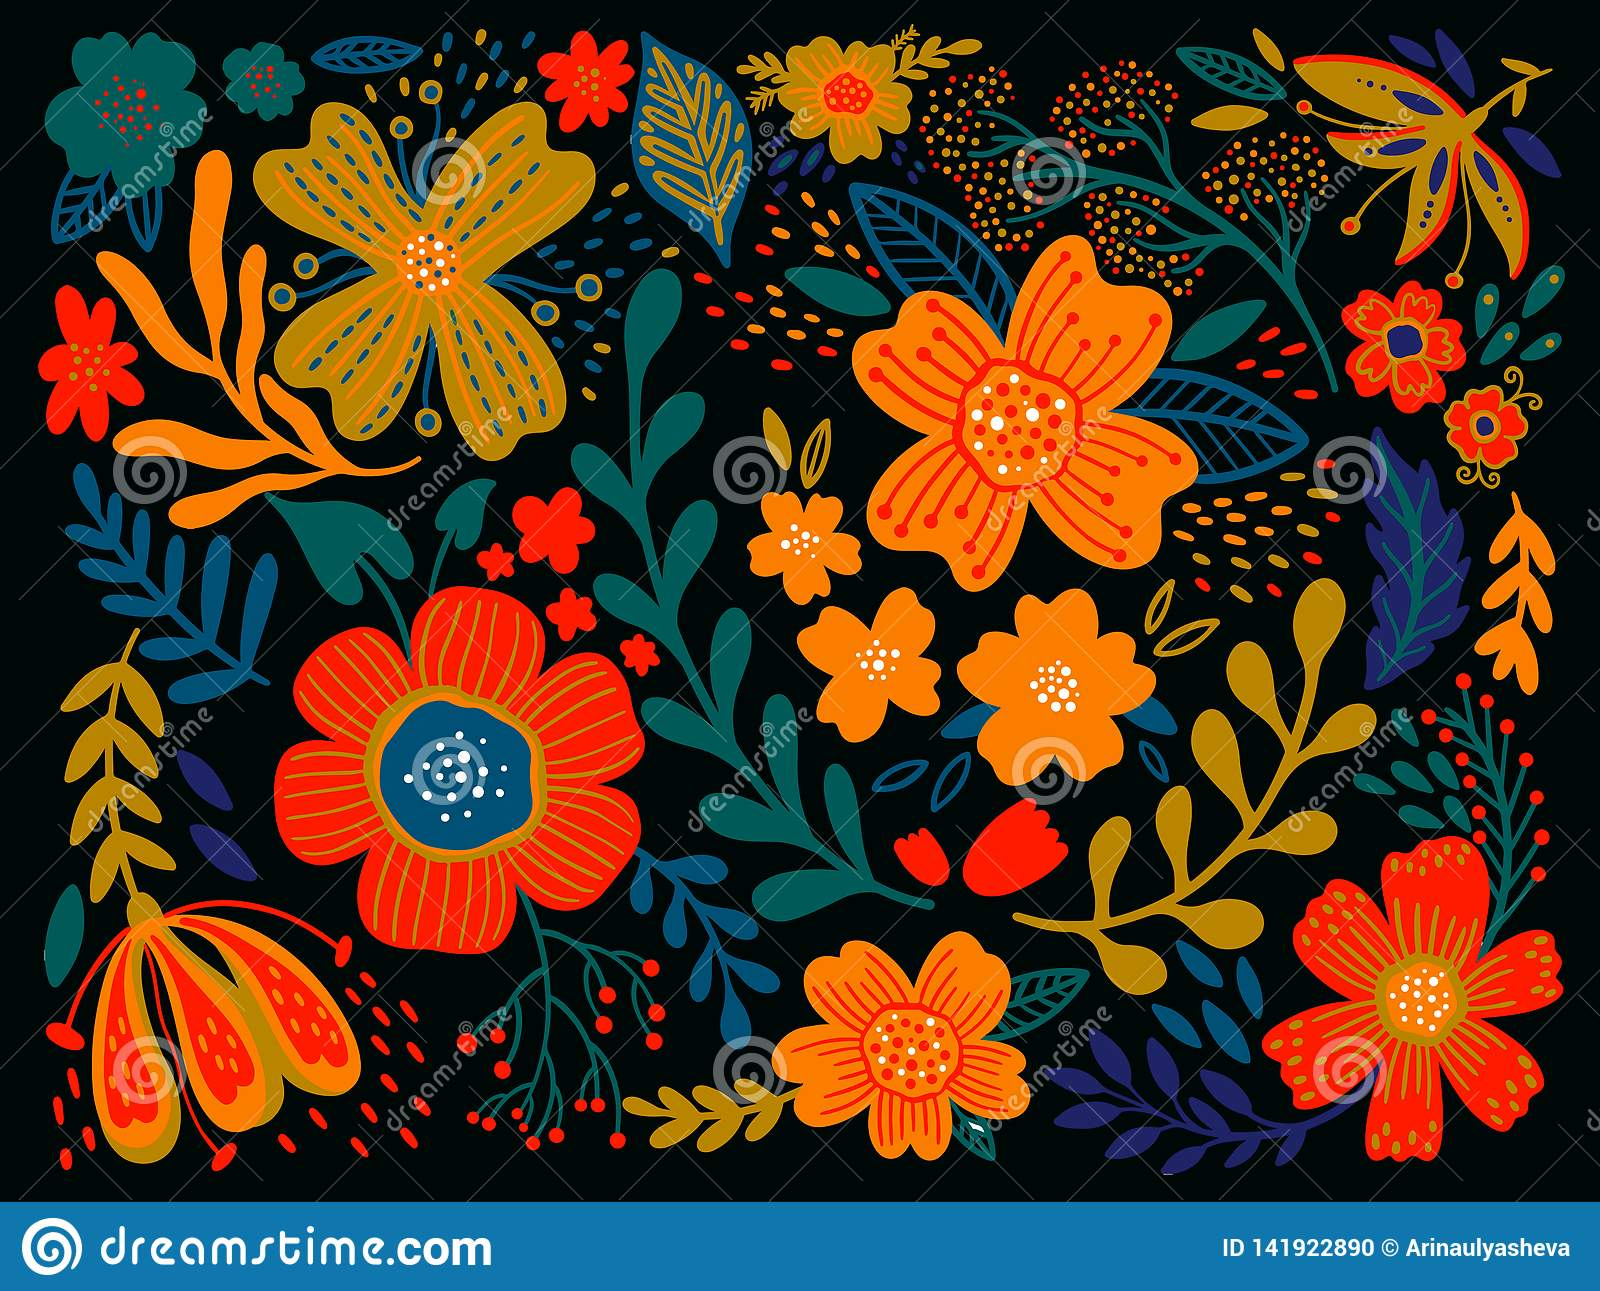 Floral Ethno Wild Folk Flowers In Black Background Set Of Country